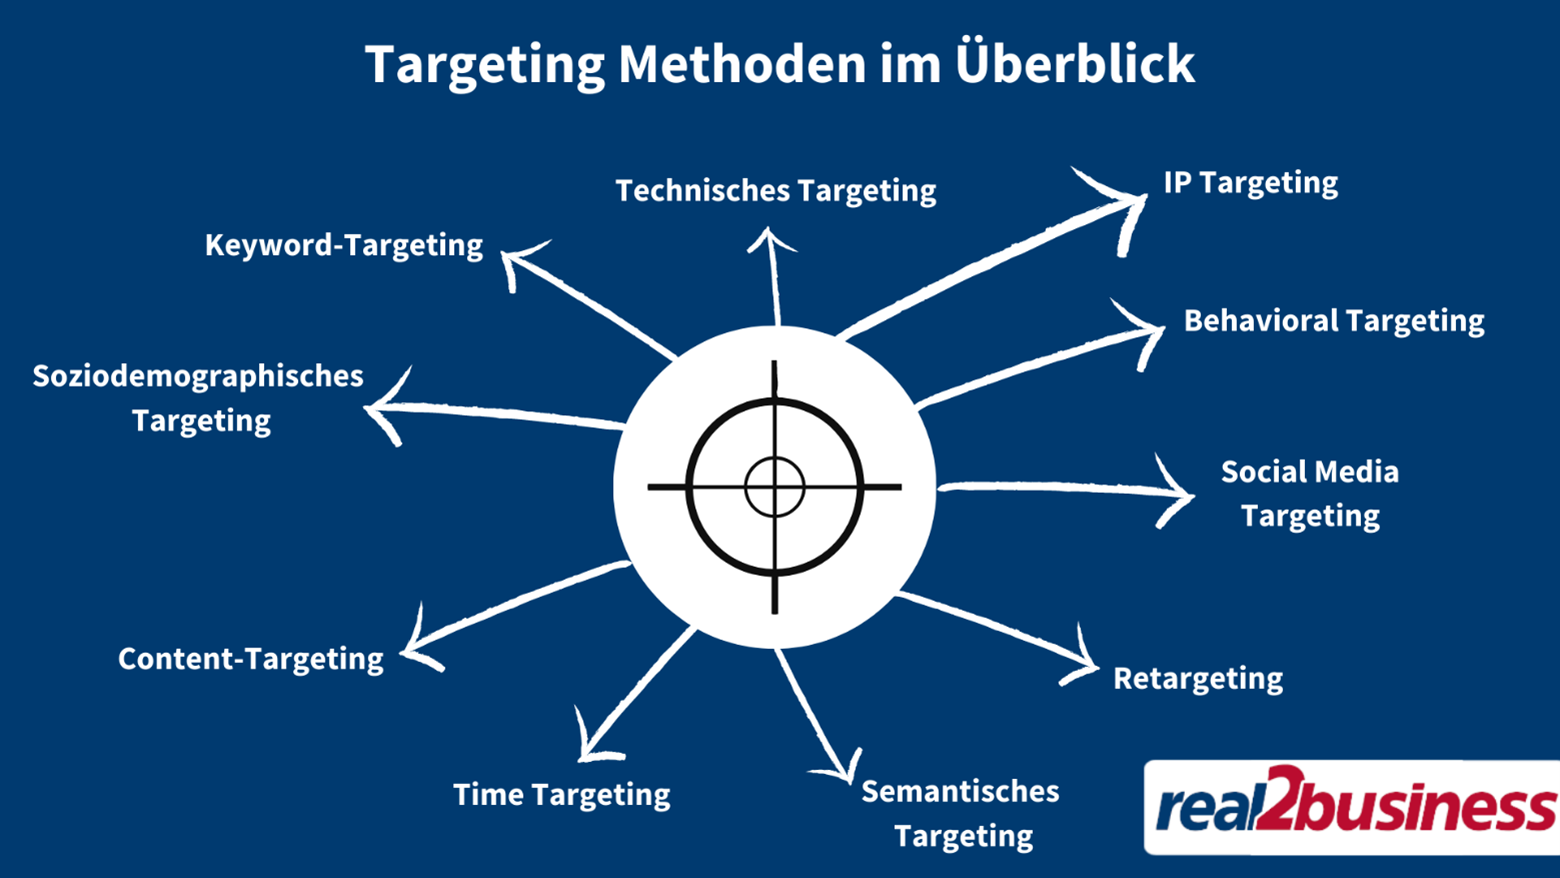 Targeting Methoden